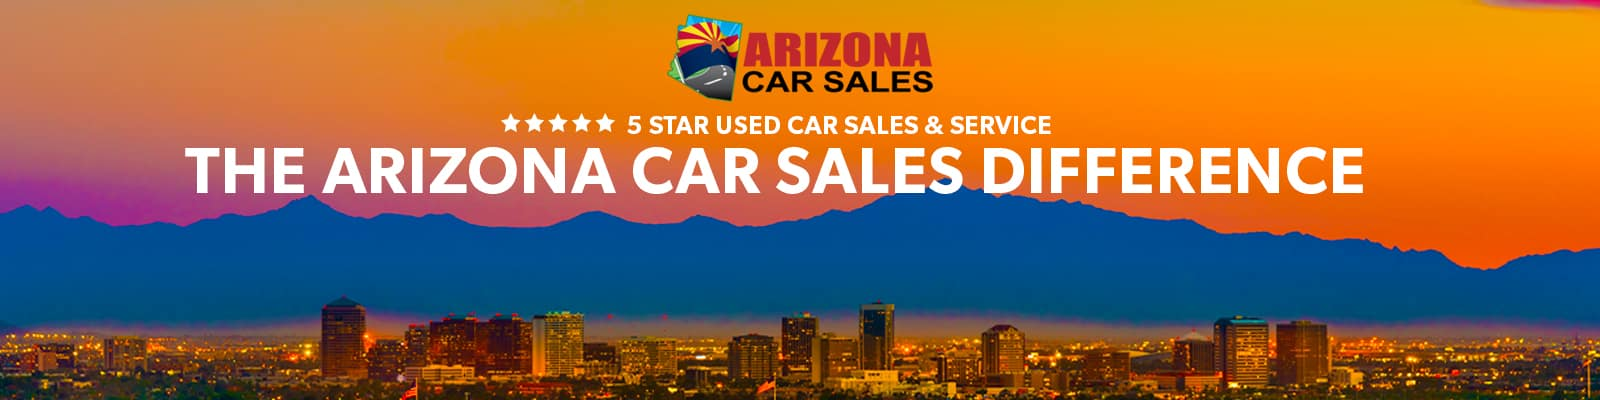 Arizona Car Sales Difference